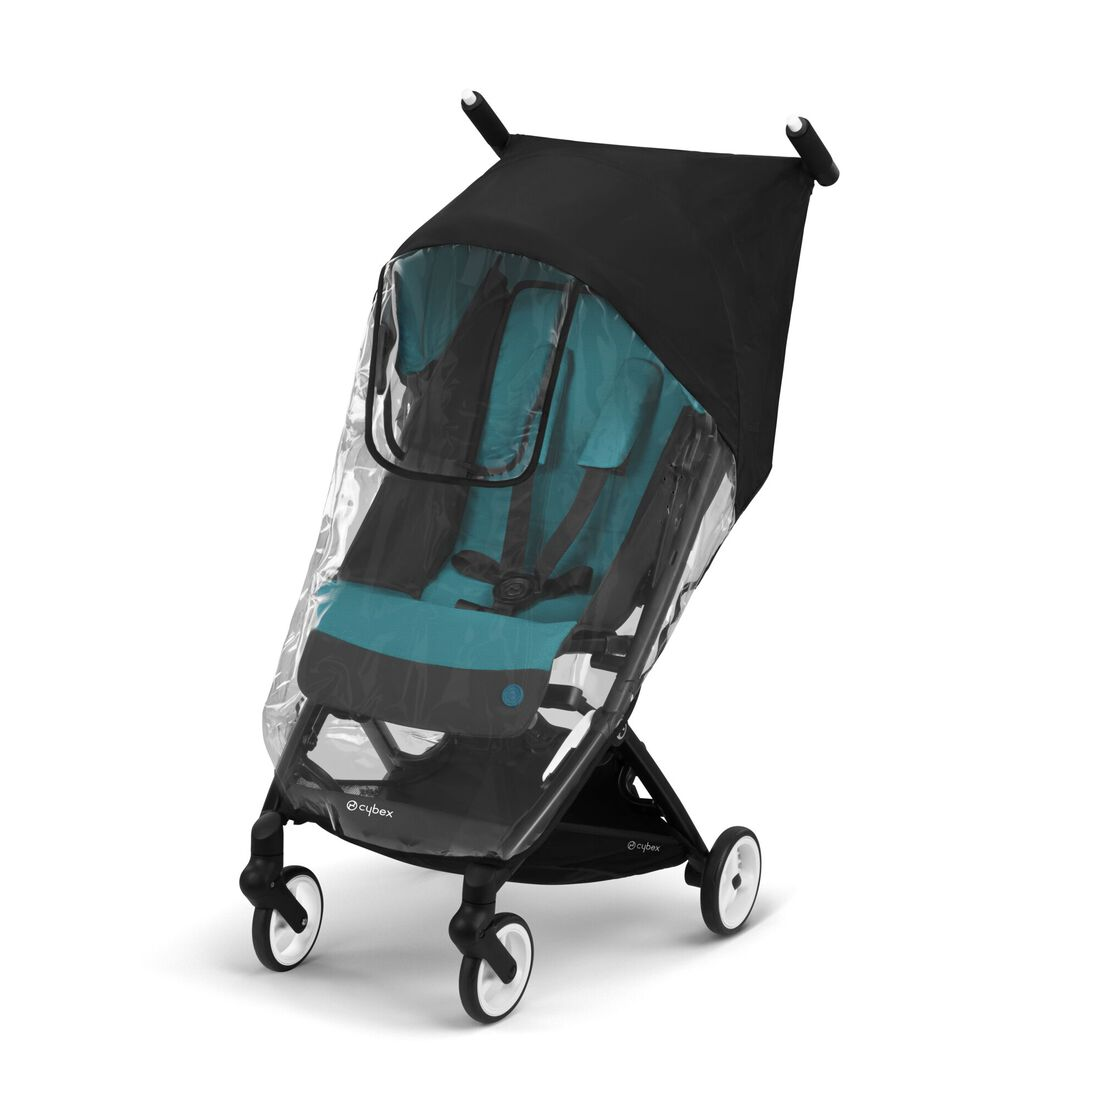 CYBEX Rain Cover Libelle - Transparent in Transparent large image number 1